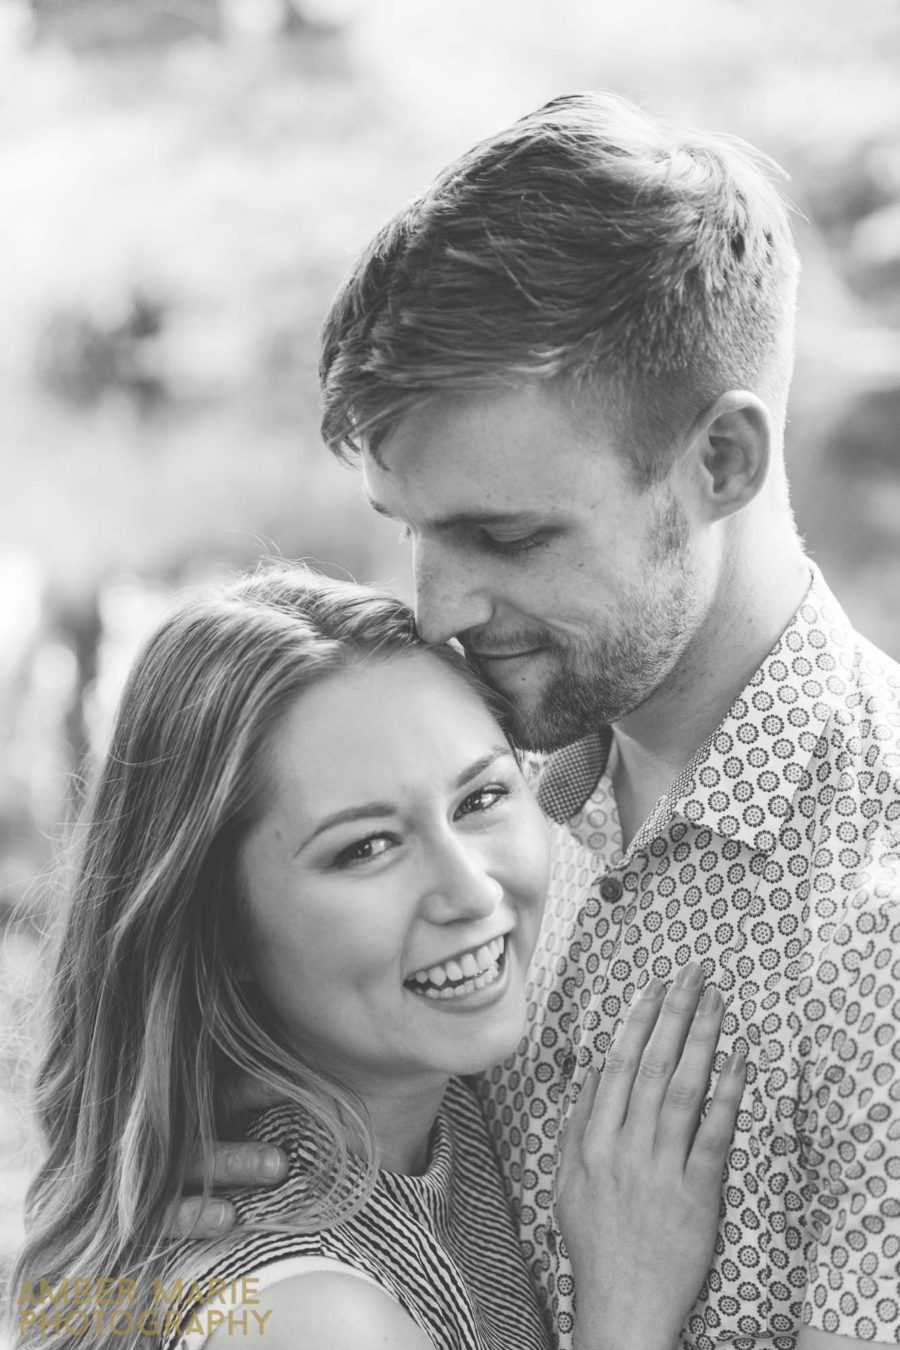 Chloe & James Engagement Shoot – Gloucestershire Wedding Photographer